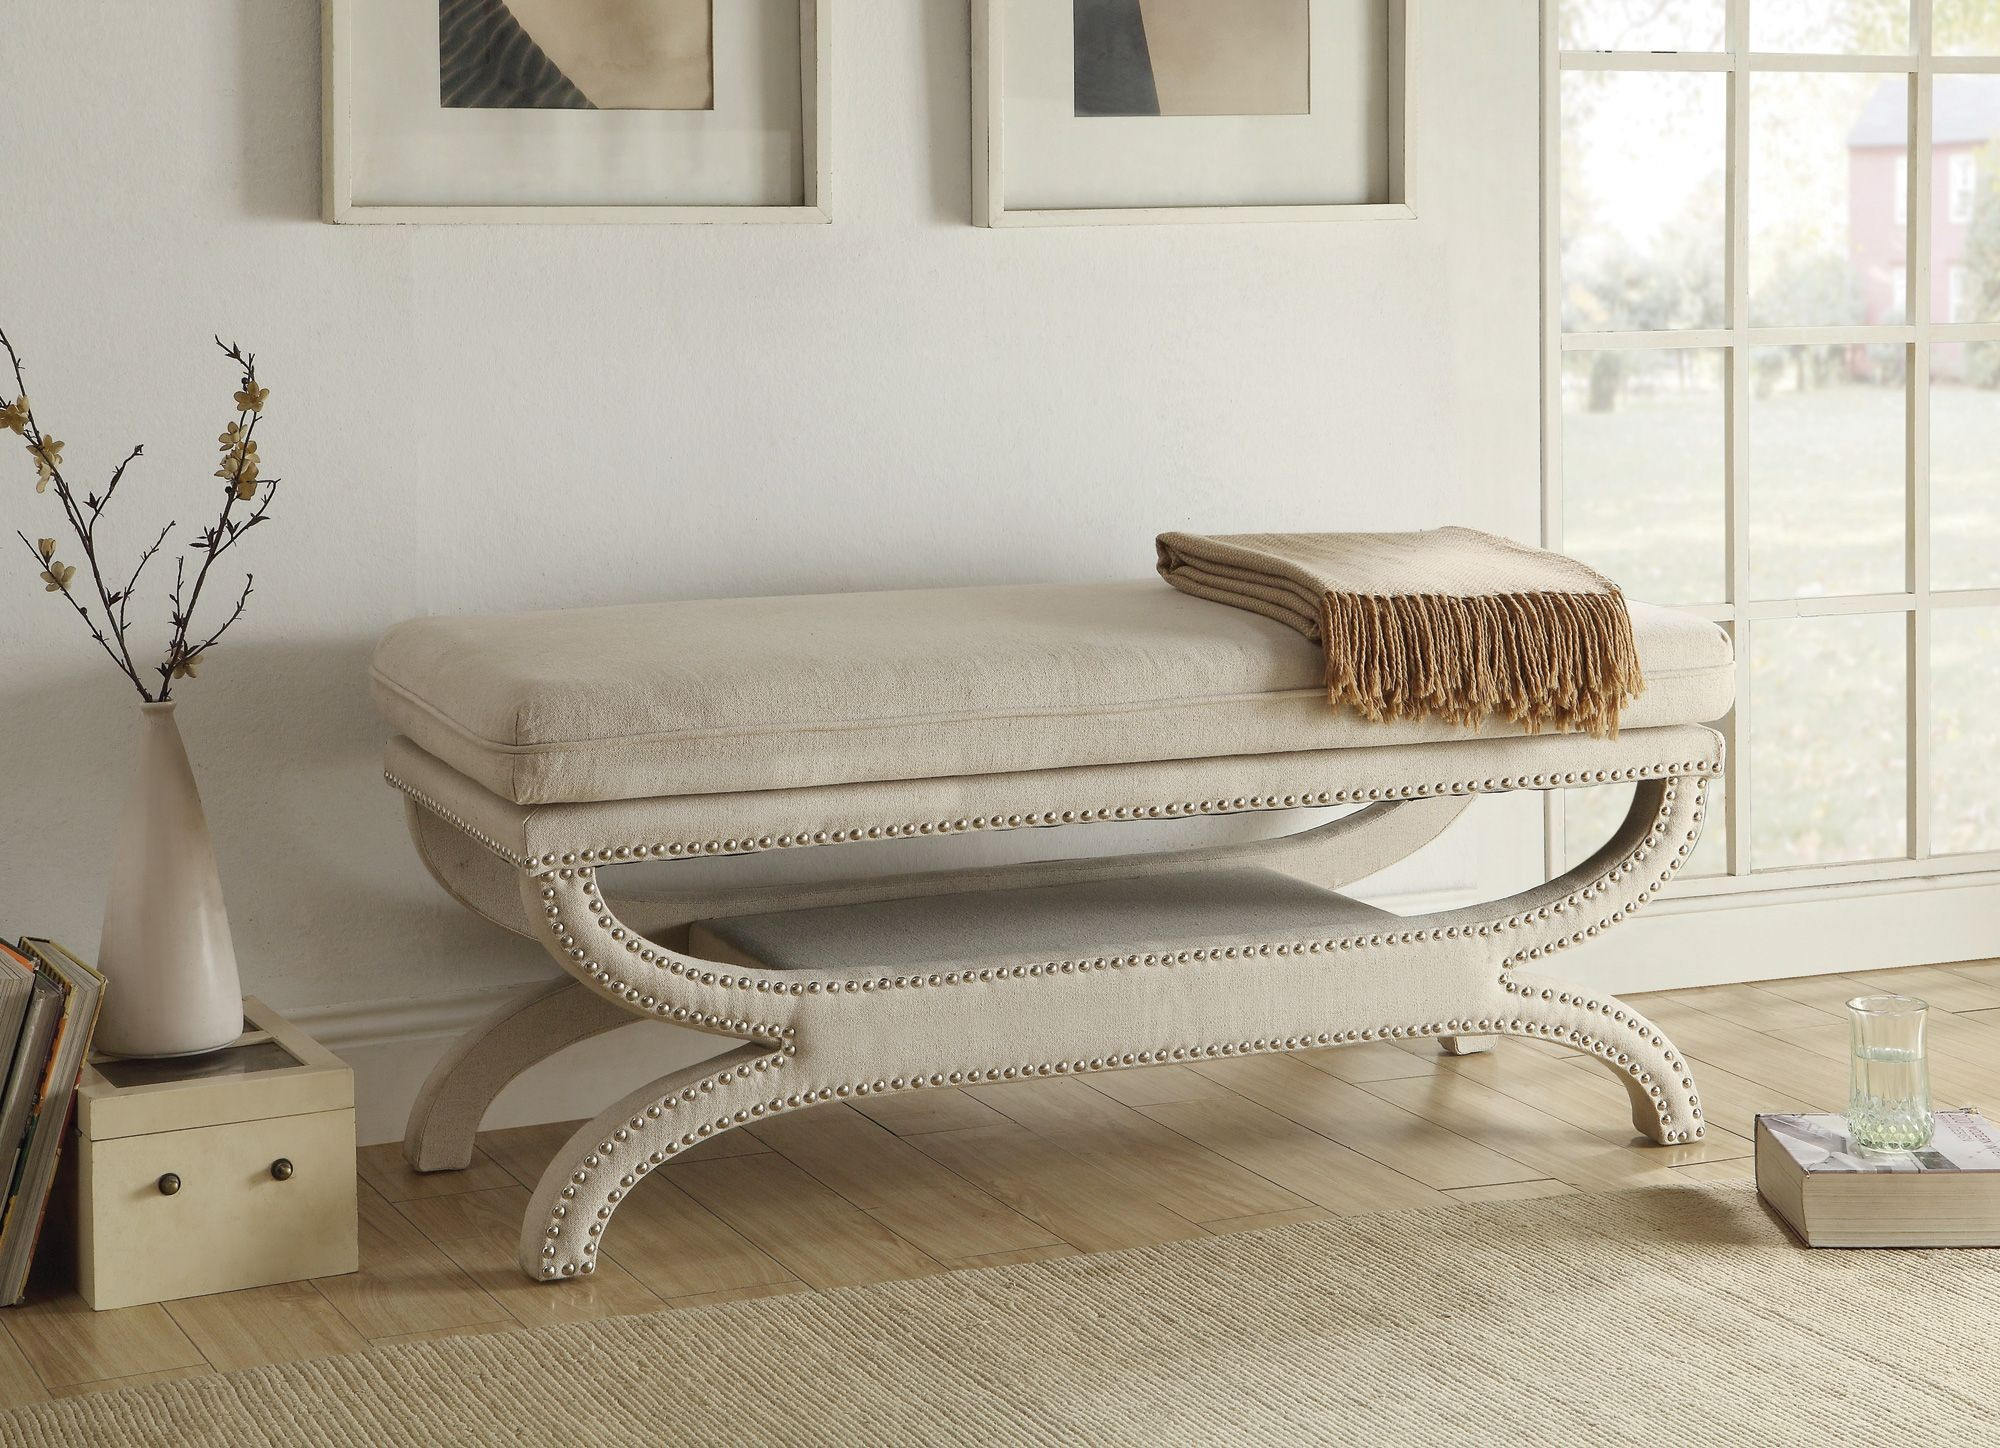 500004 White Upholstery Bench From Coaster 500004